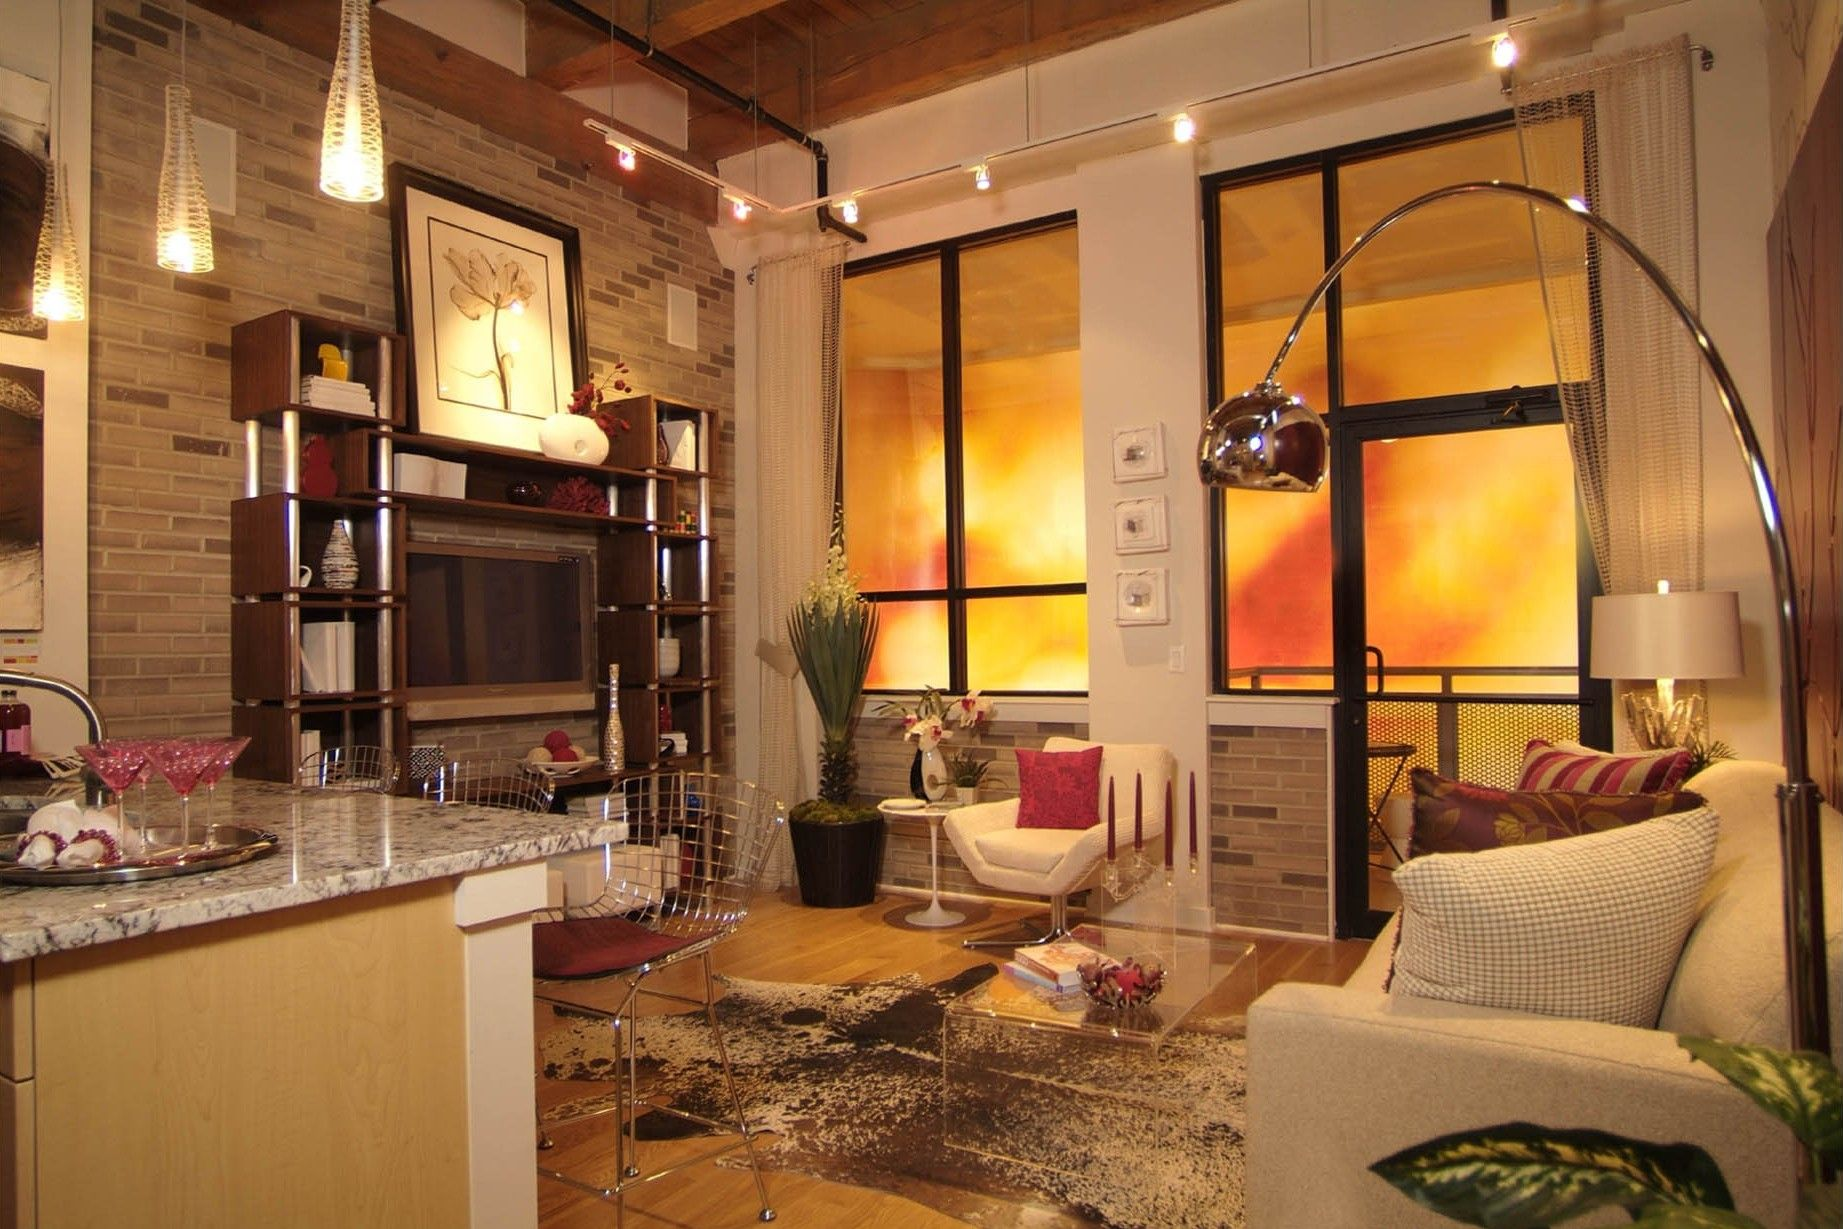 Brick Loft Apartment